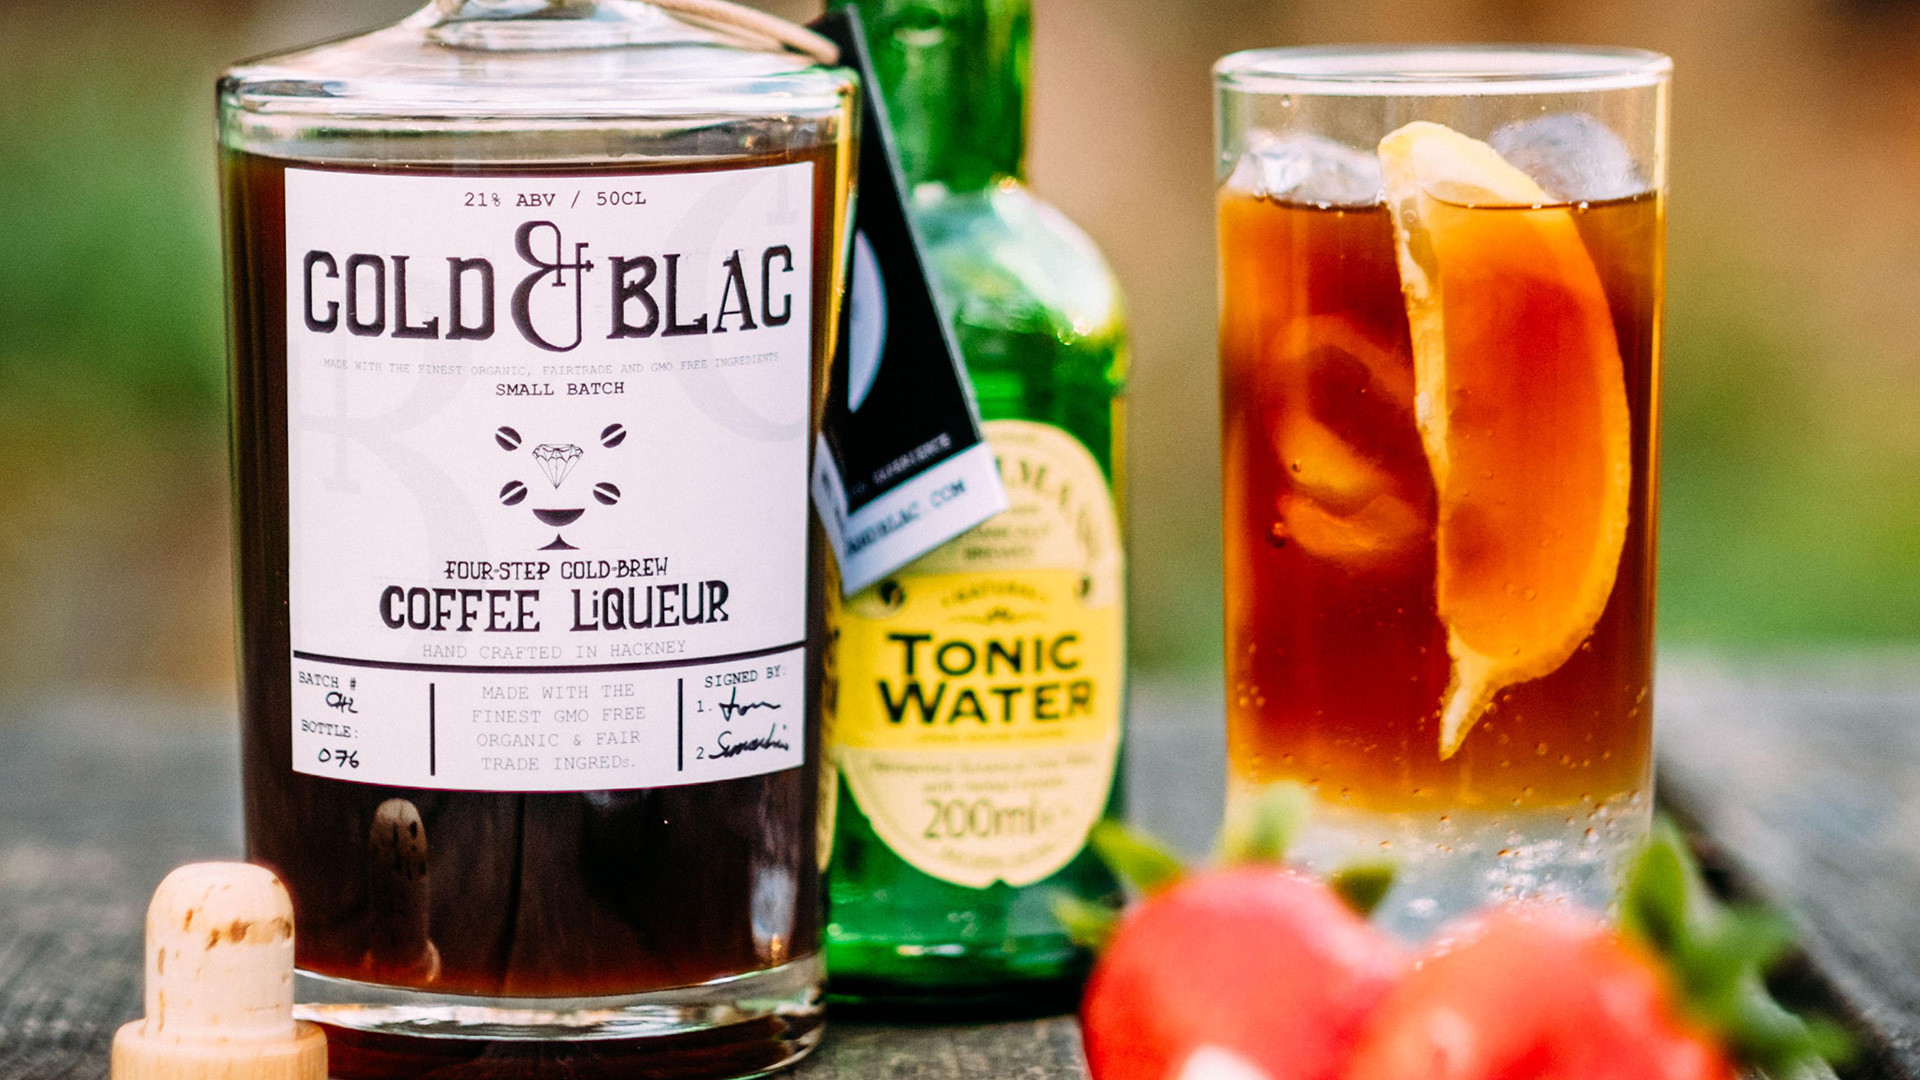 COLD&BLAC coffee liqueur and tonic